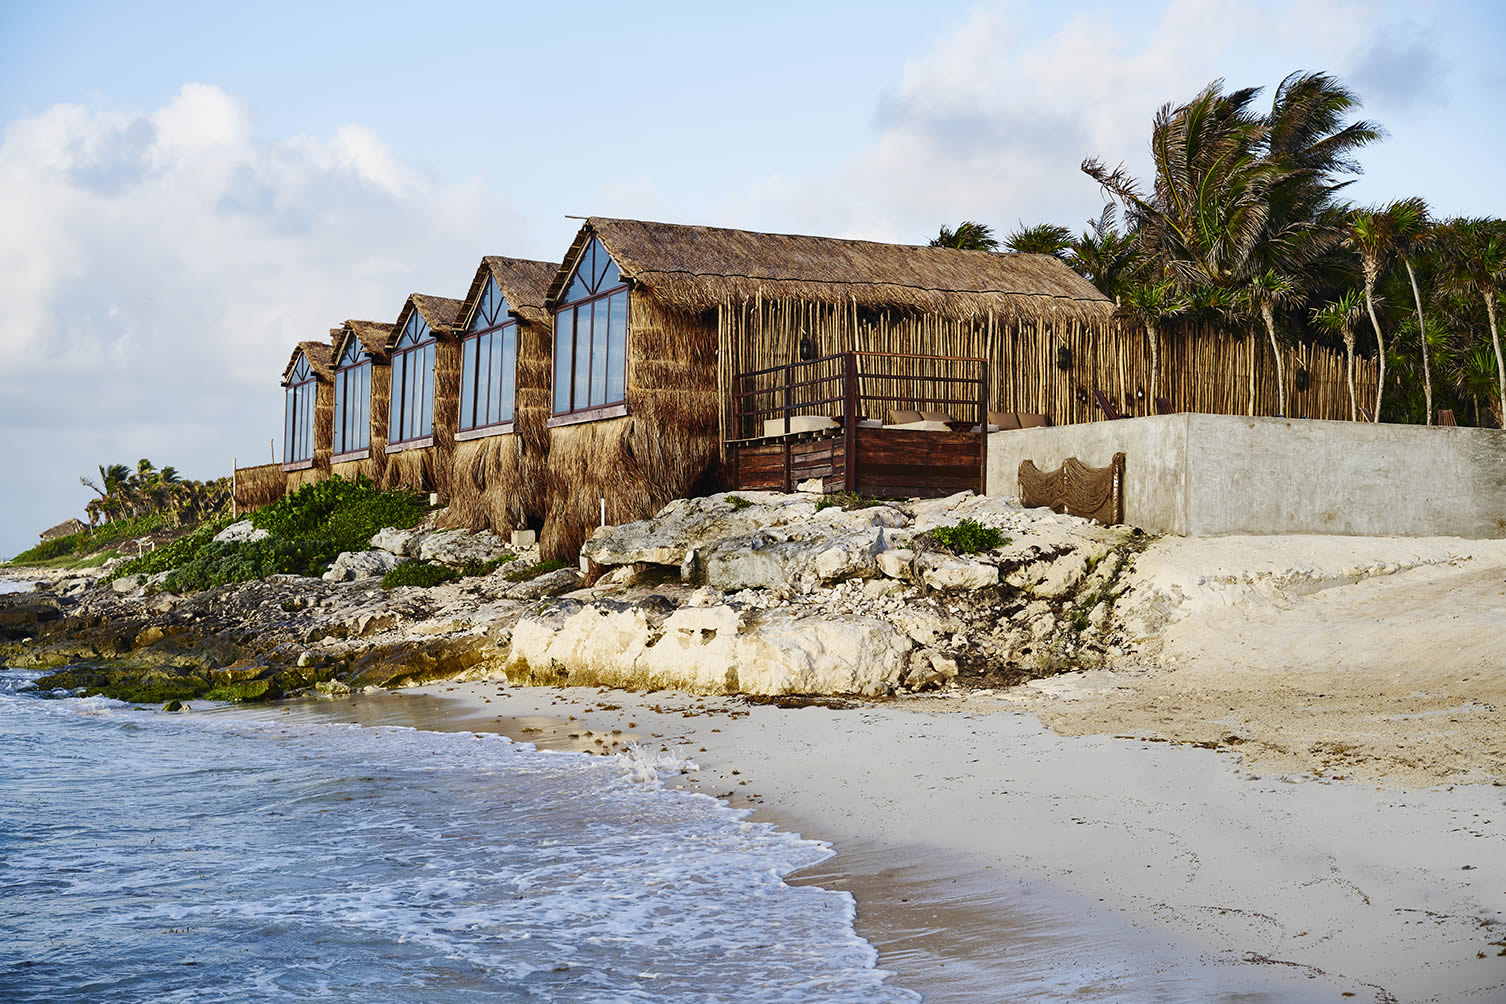 Habitas Hotel in Tulum, Mexico. Photo by Adrian Gaut.